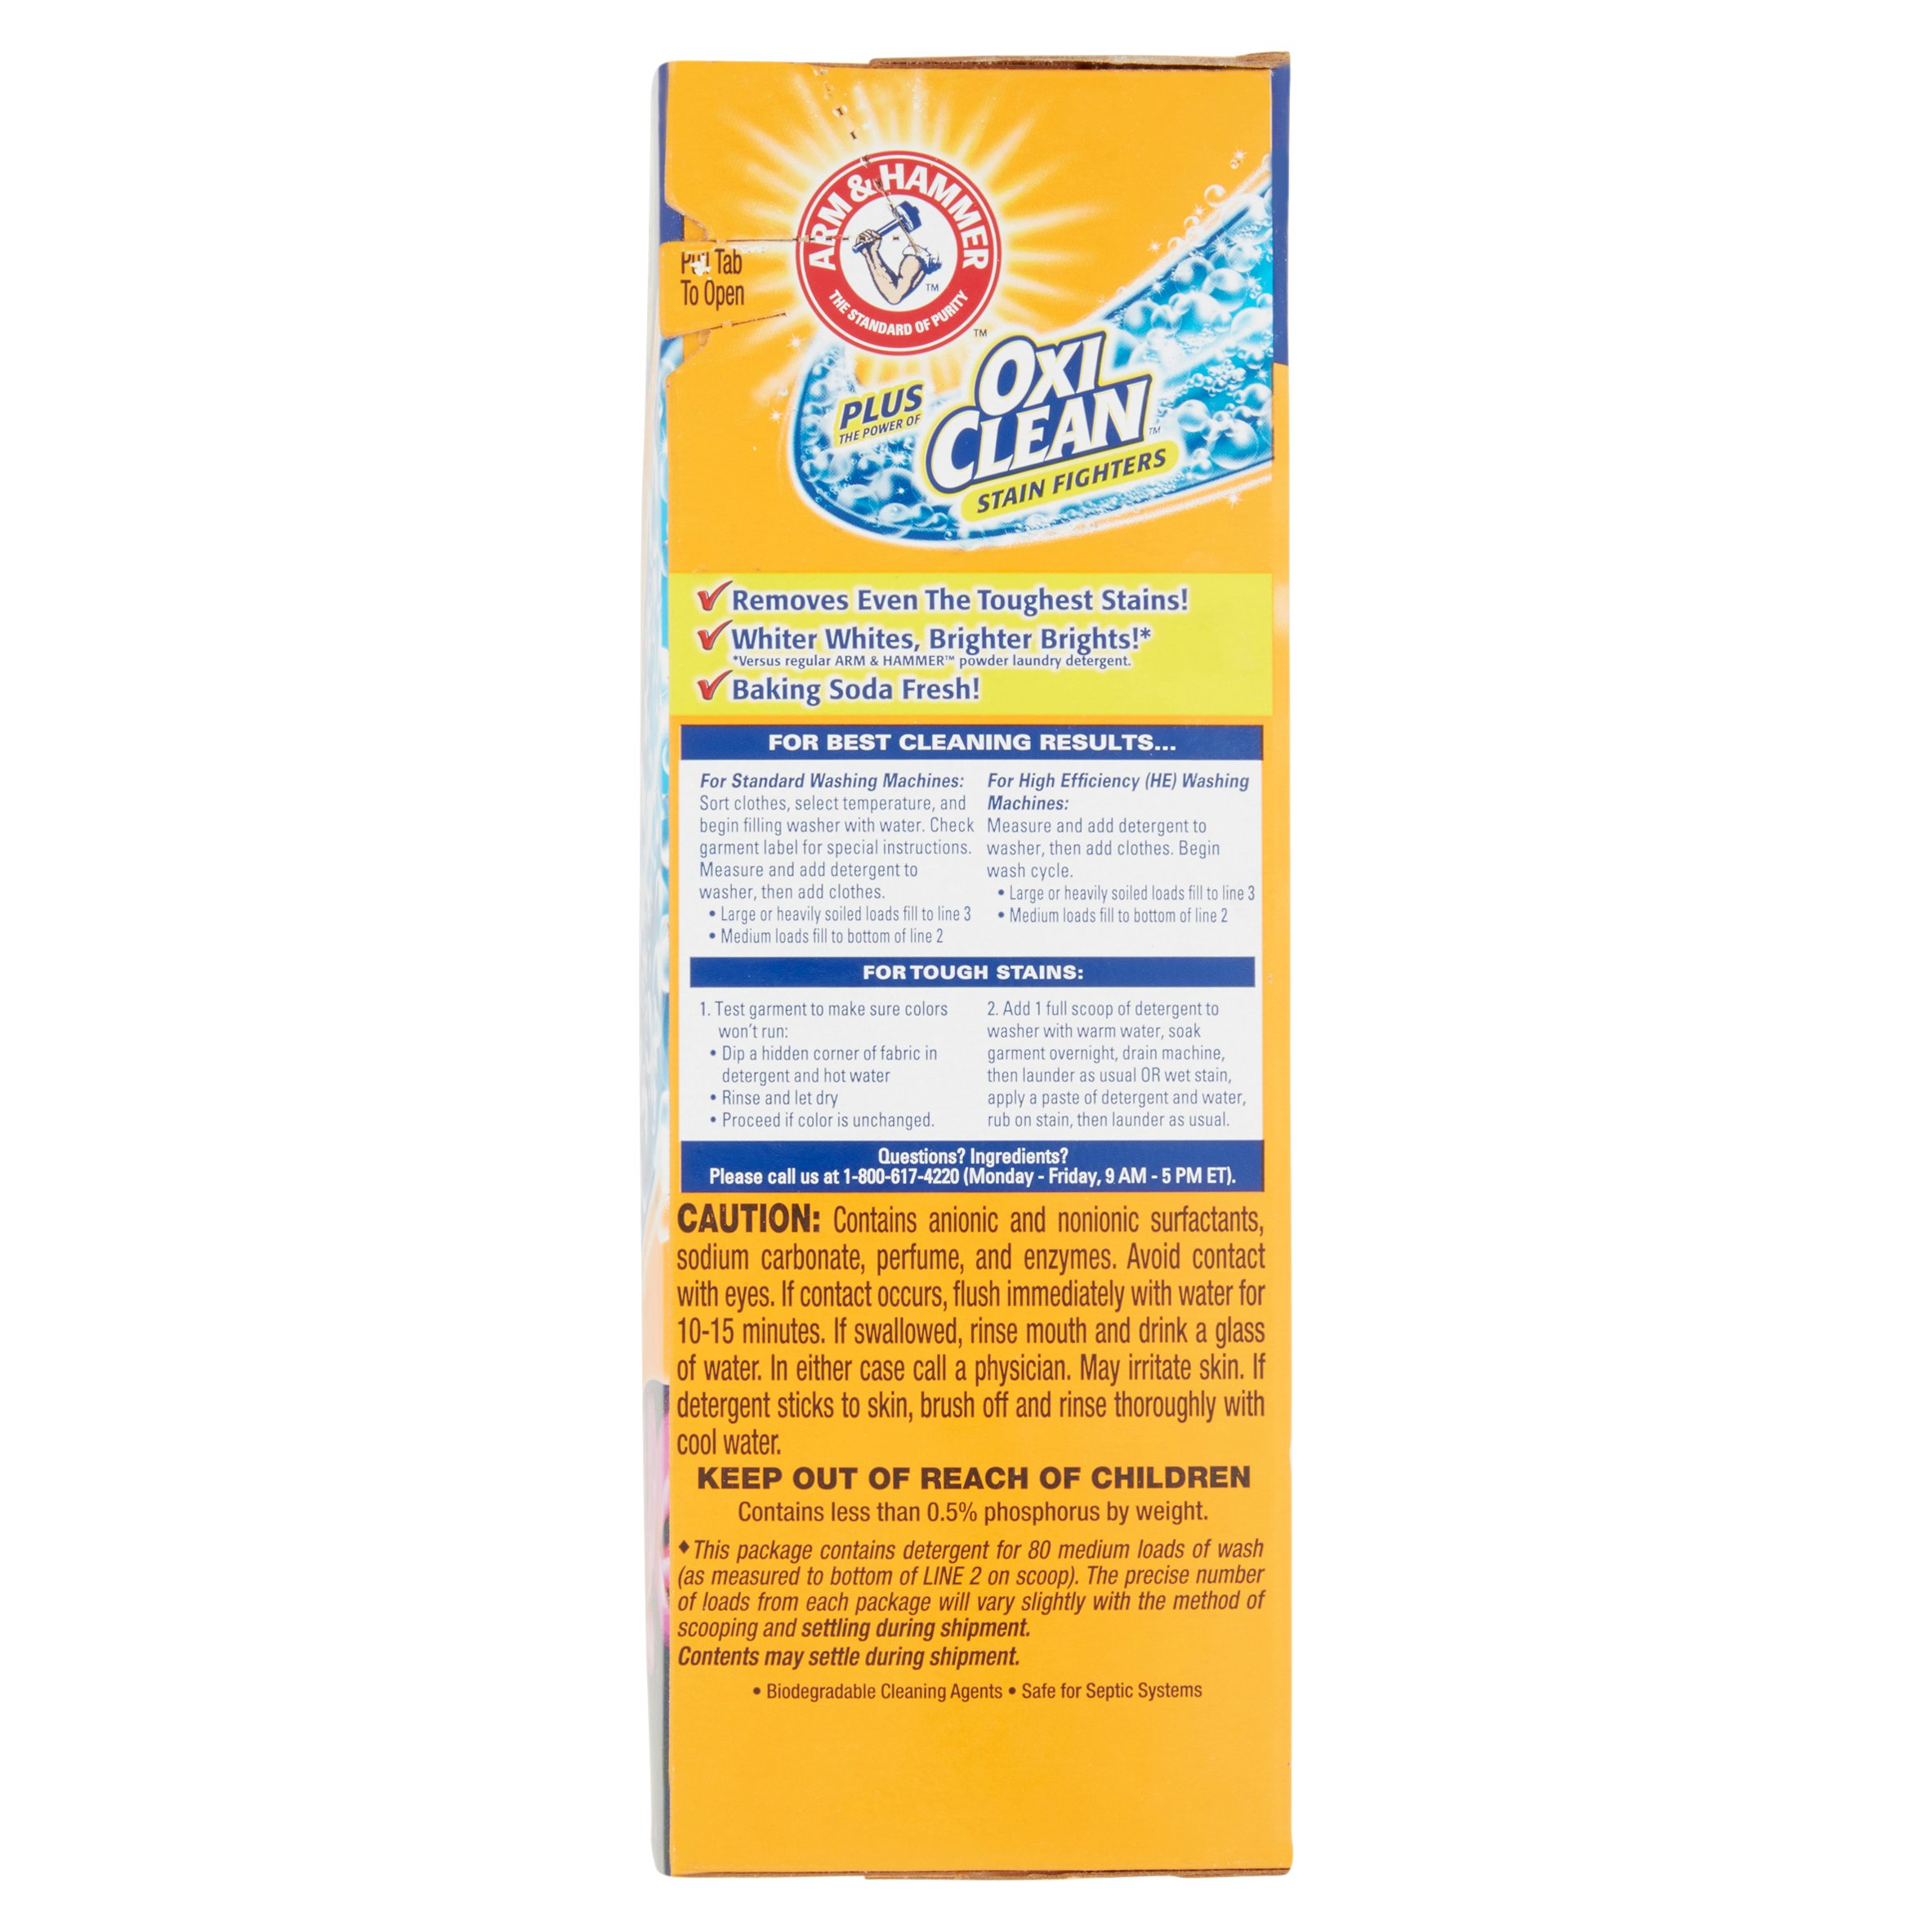 Is arm and hammer powder laundry detergent he - Arm Hammer Plus Oxiclean Tropical Burst Laundry Detergent 6 61 Lbs Walmart Com